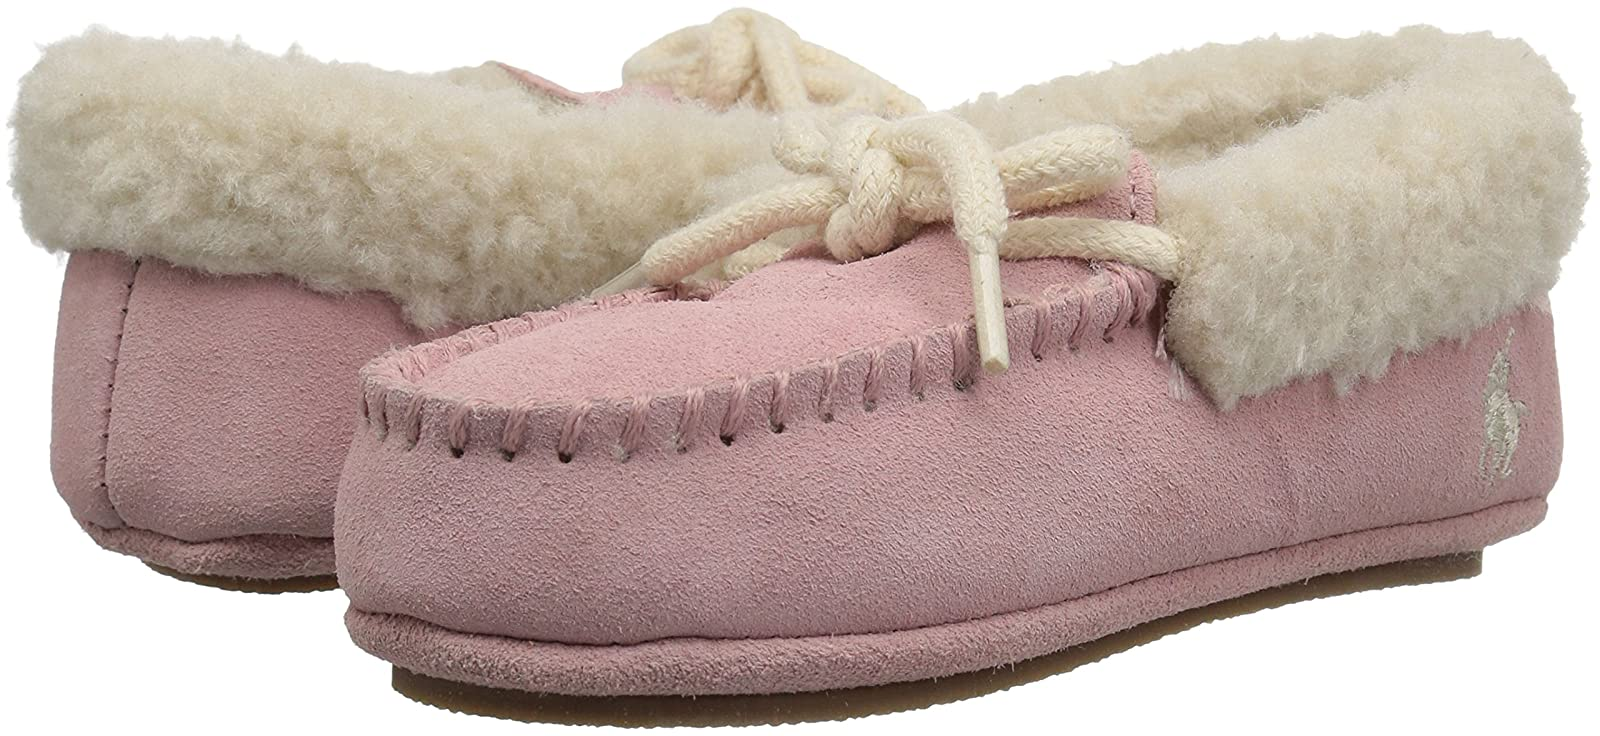 Polo Ralph Lauren Kids Girls' Allister Slipper RF100516T - 6